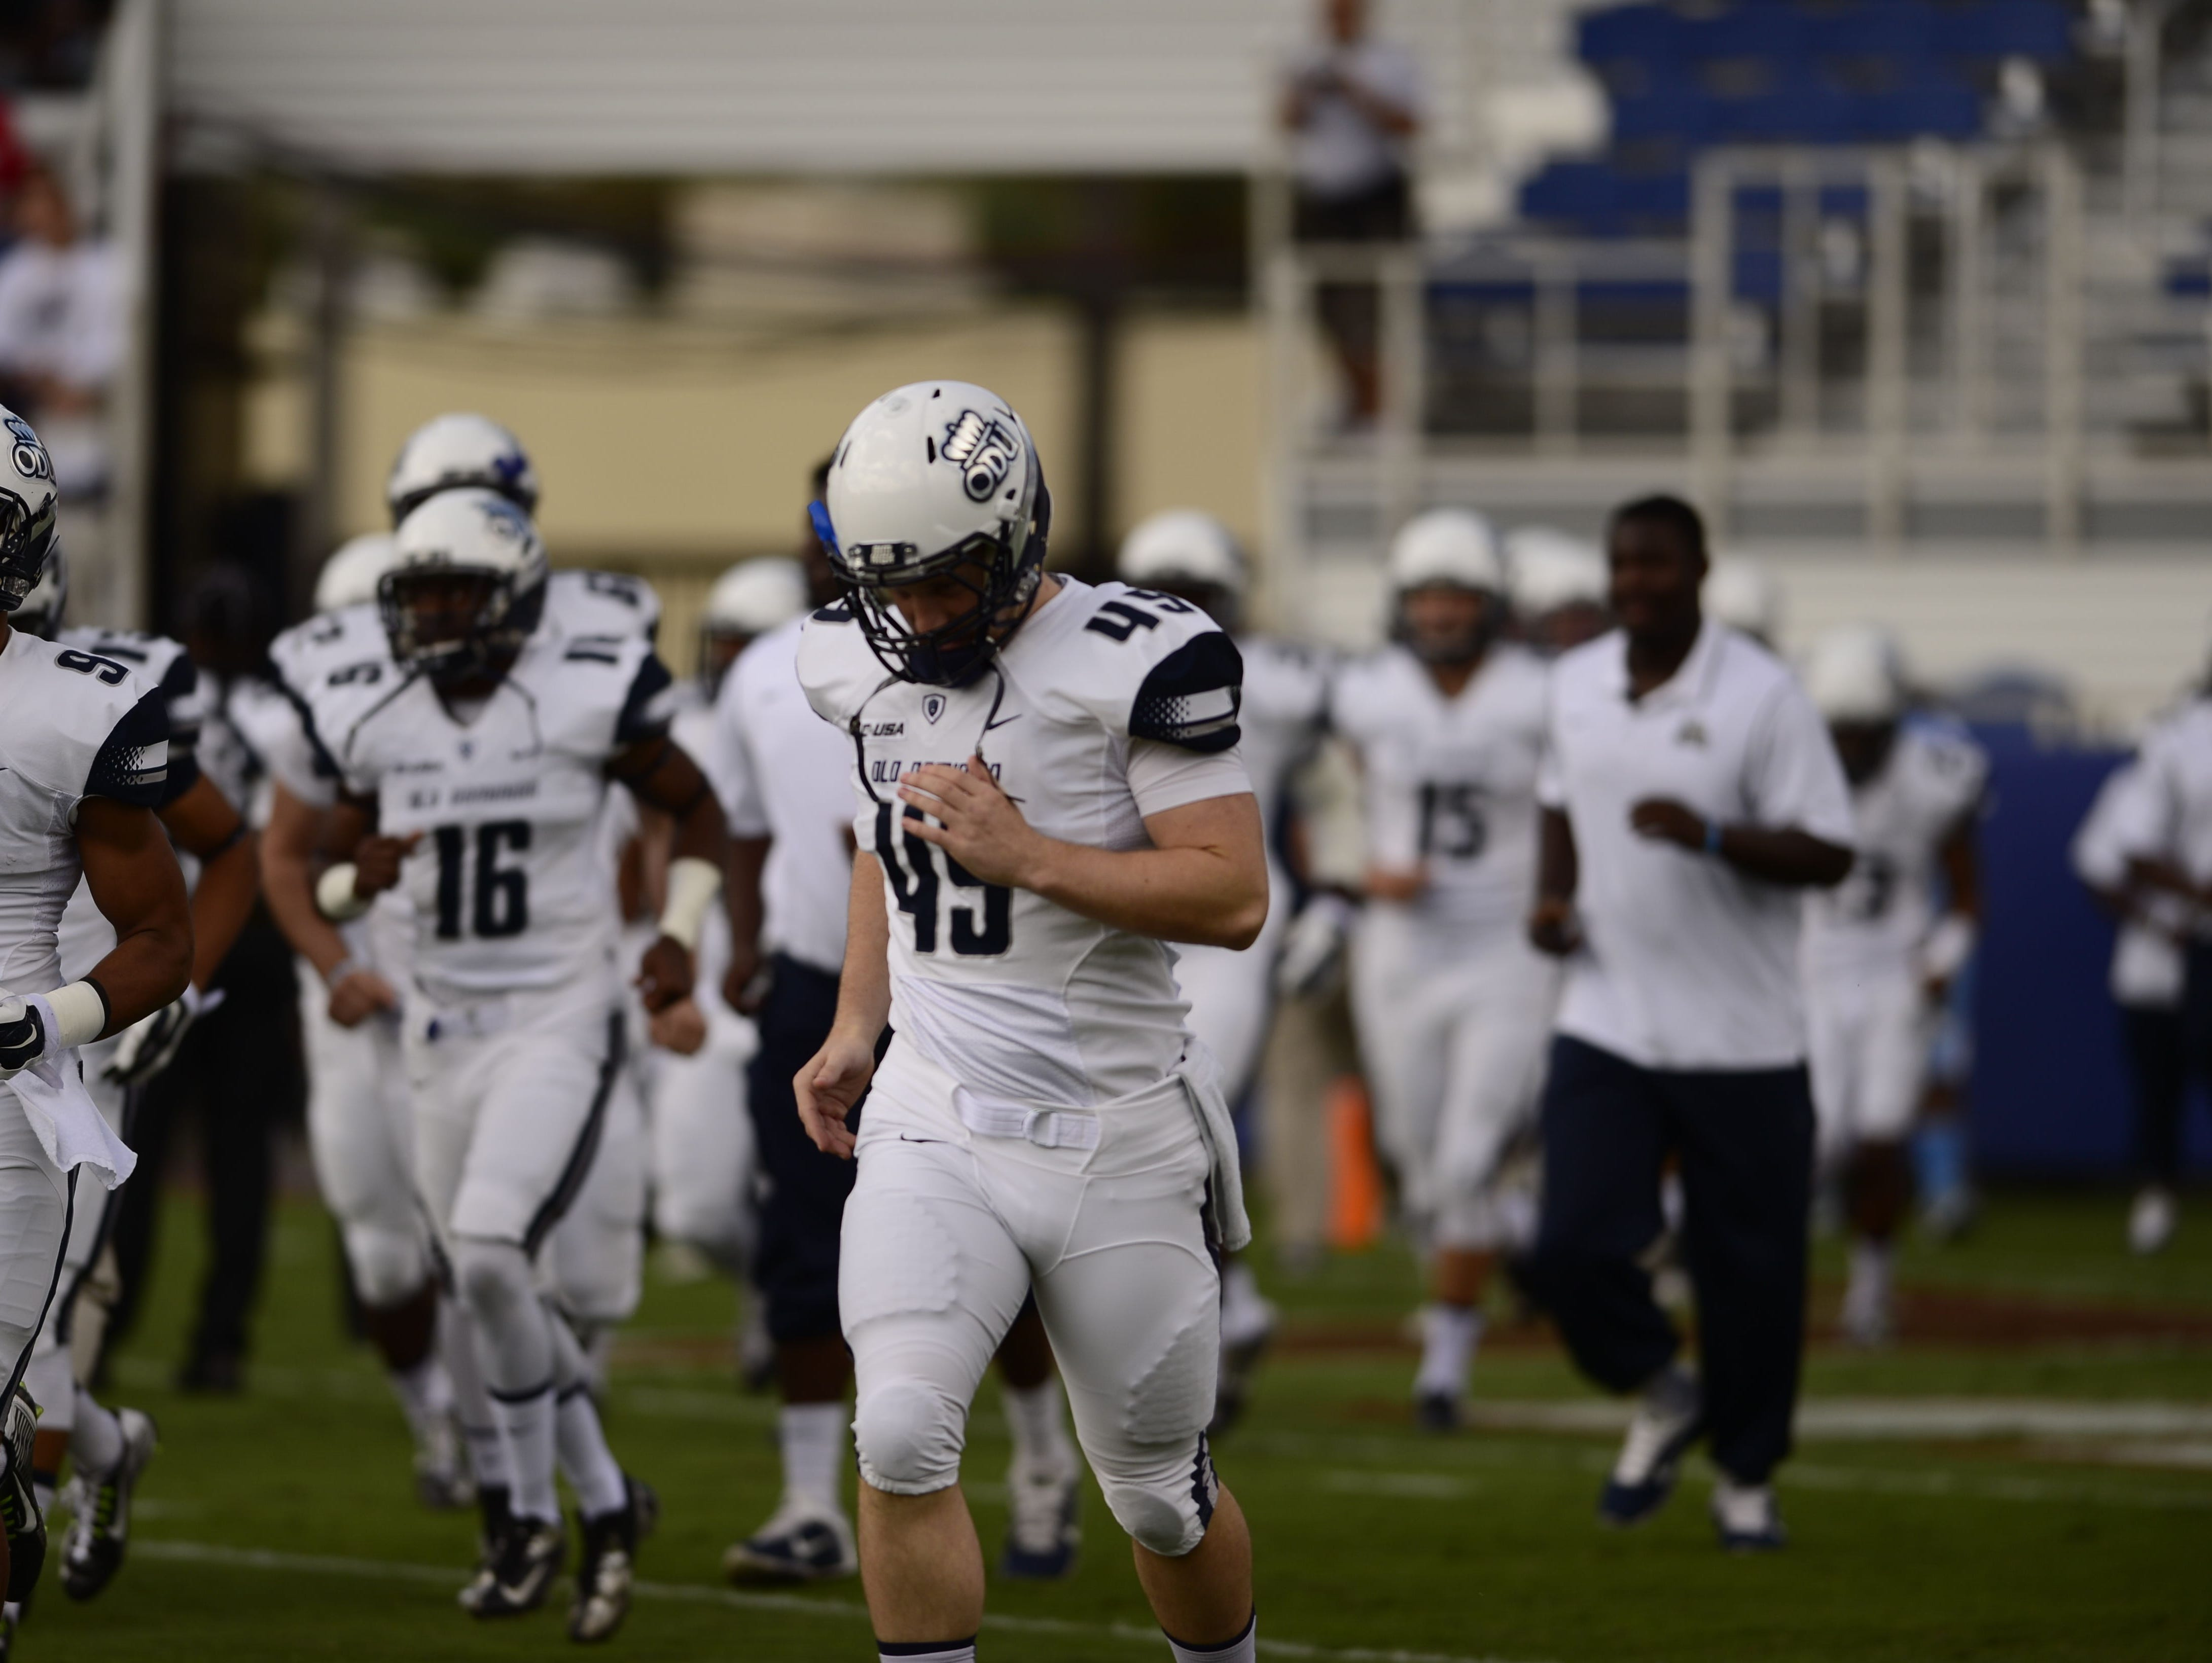 Rick Lovato Jr. of Middletown makes his way out onto the field with his Old Dominion teammates last season.